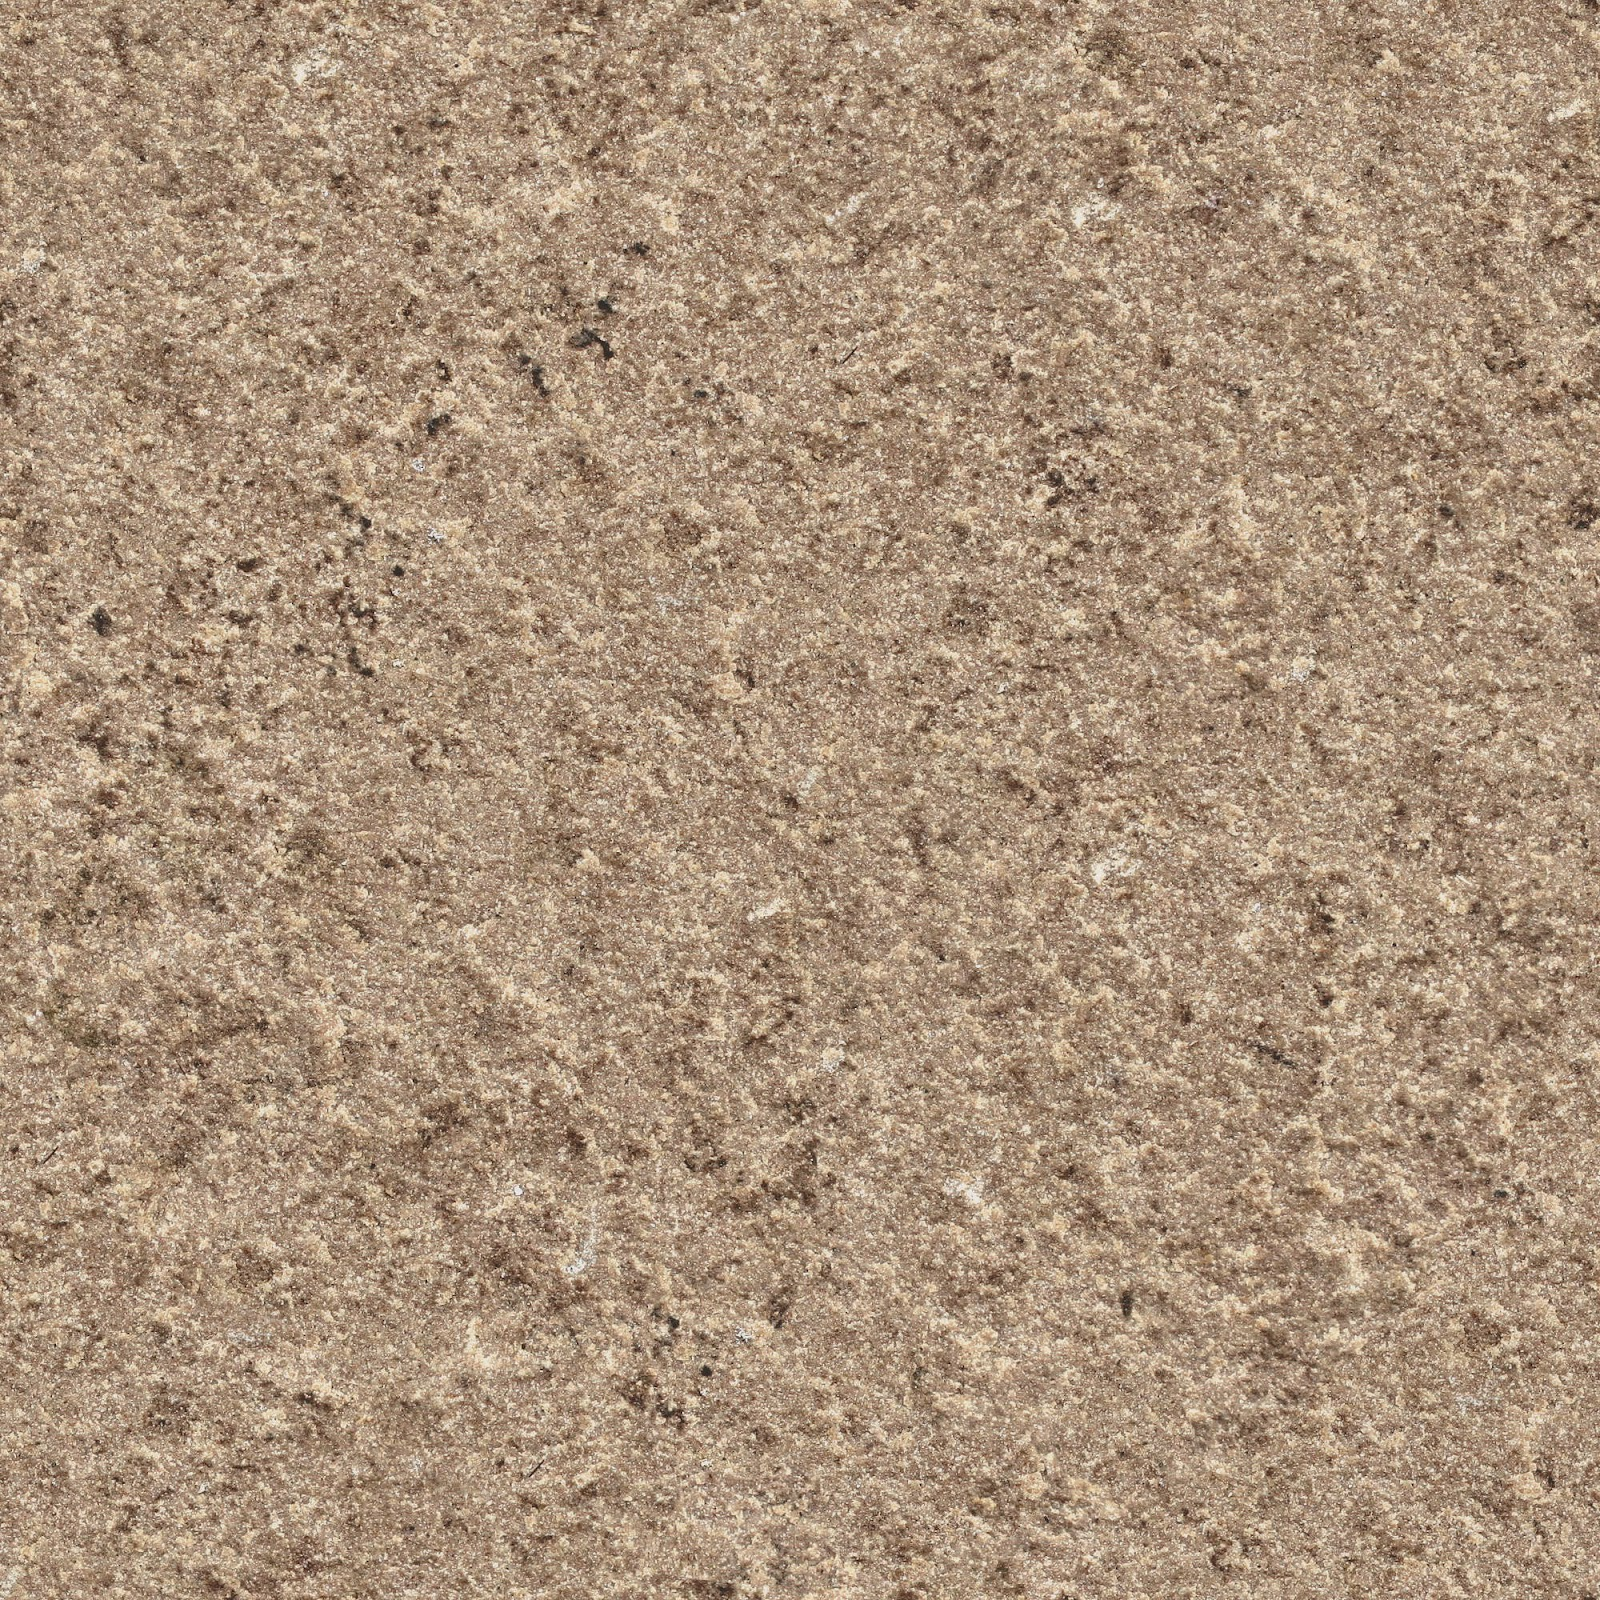 HIGH RESOLUTION TEXTURES: Free Seamless Stone Textures